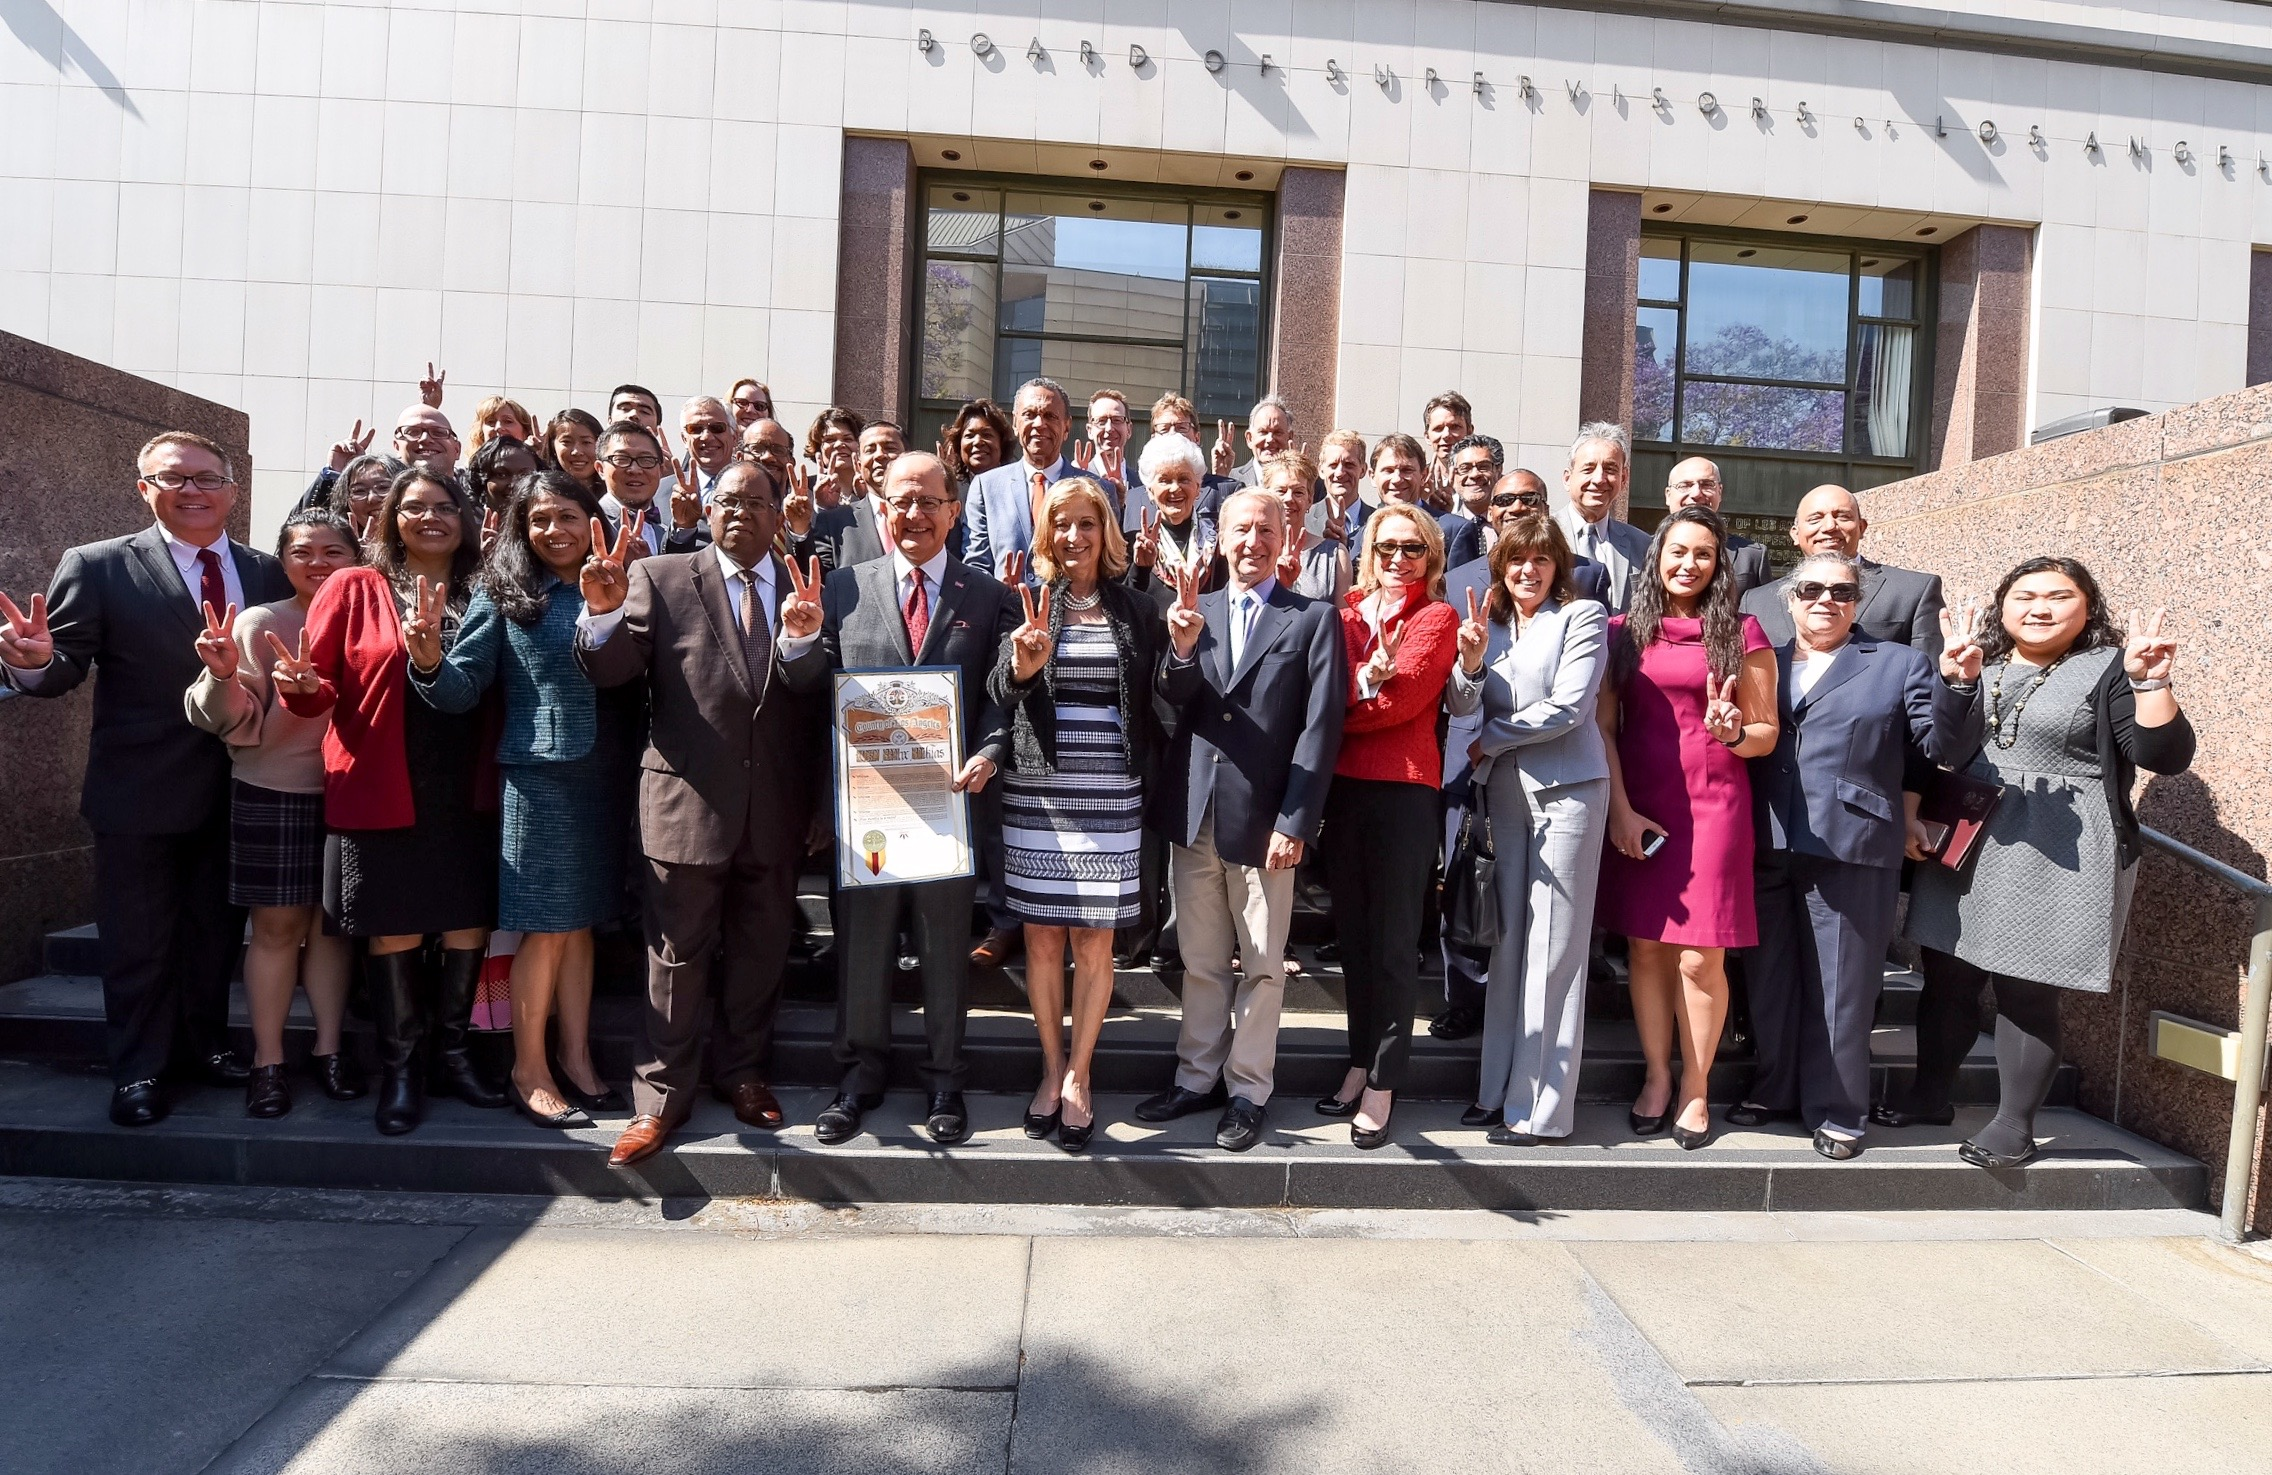 USC students, alumni and officials with President Nikias and Supervisor Ridley-Thomas